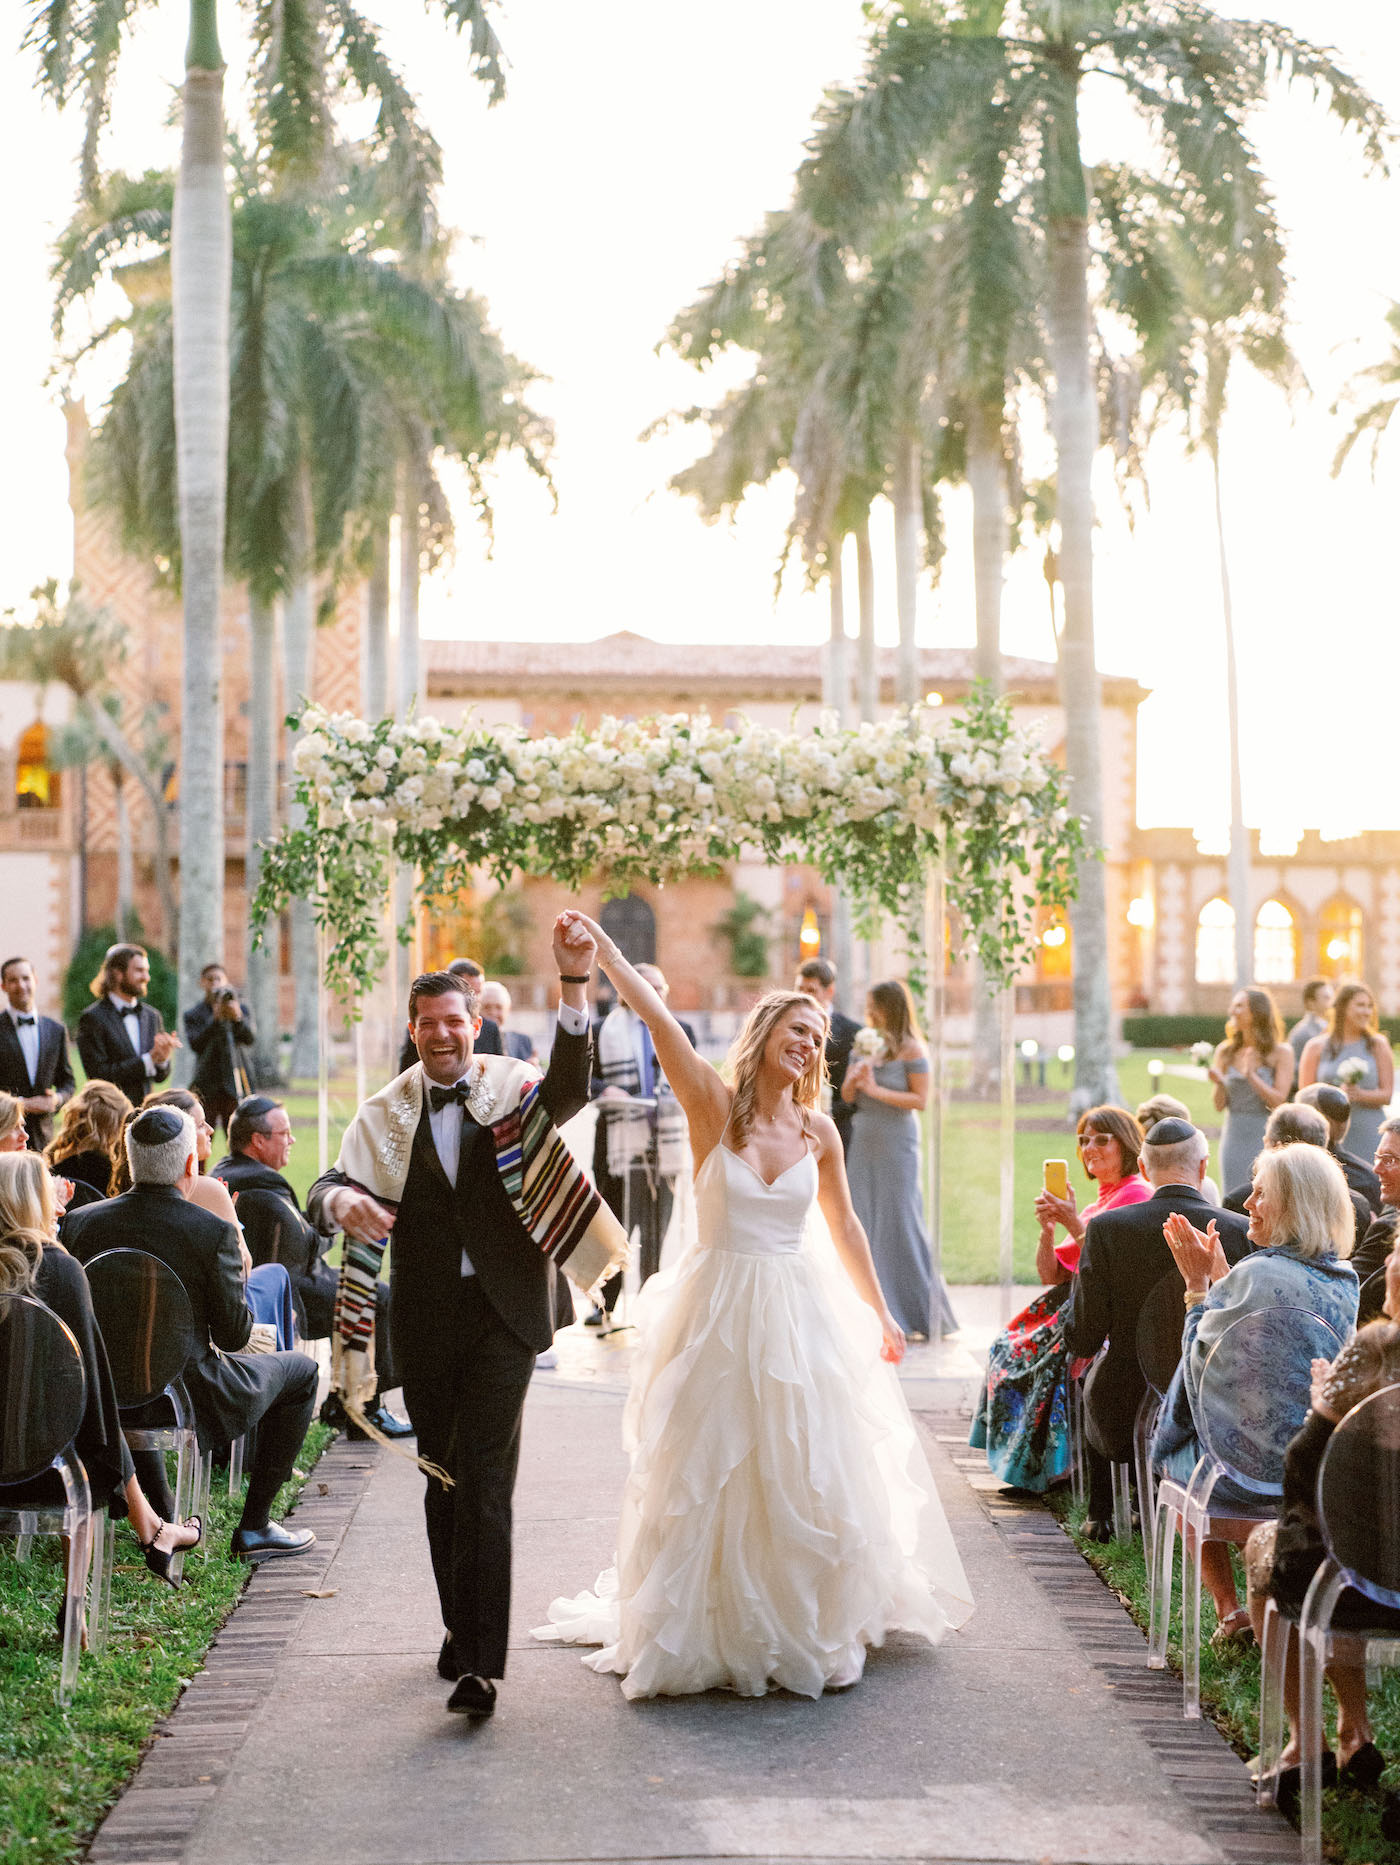 Romantic, Modern Florida Bride and Groom Just Married Recessional, Outdoor Wedding Ceremony with Jewish Altar, Ghost Chairs, Clear Acrylic Chuppah with Lush Ivory Floral Bouquets and Greenery Decor, In Courtyard of The Ringling Museum | Sarasota Wedding Planner NK Weddings